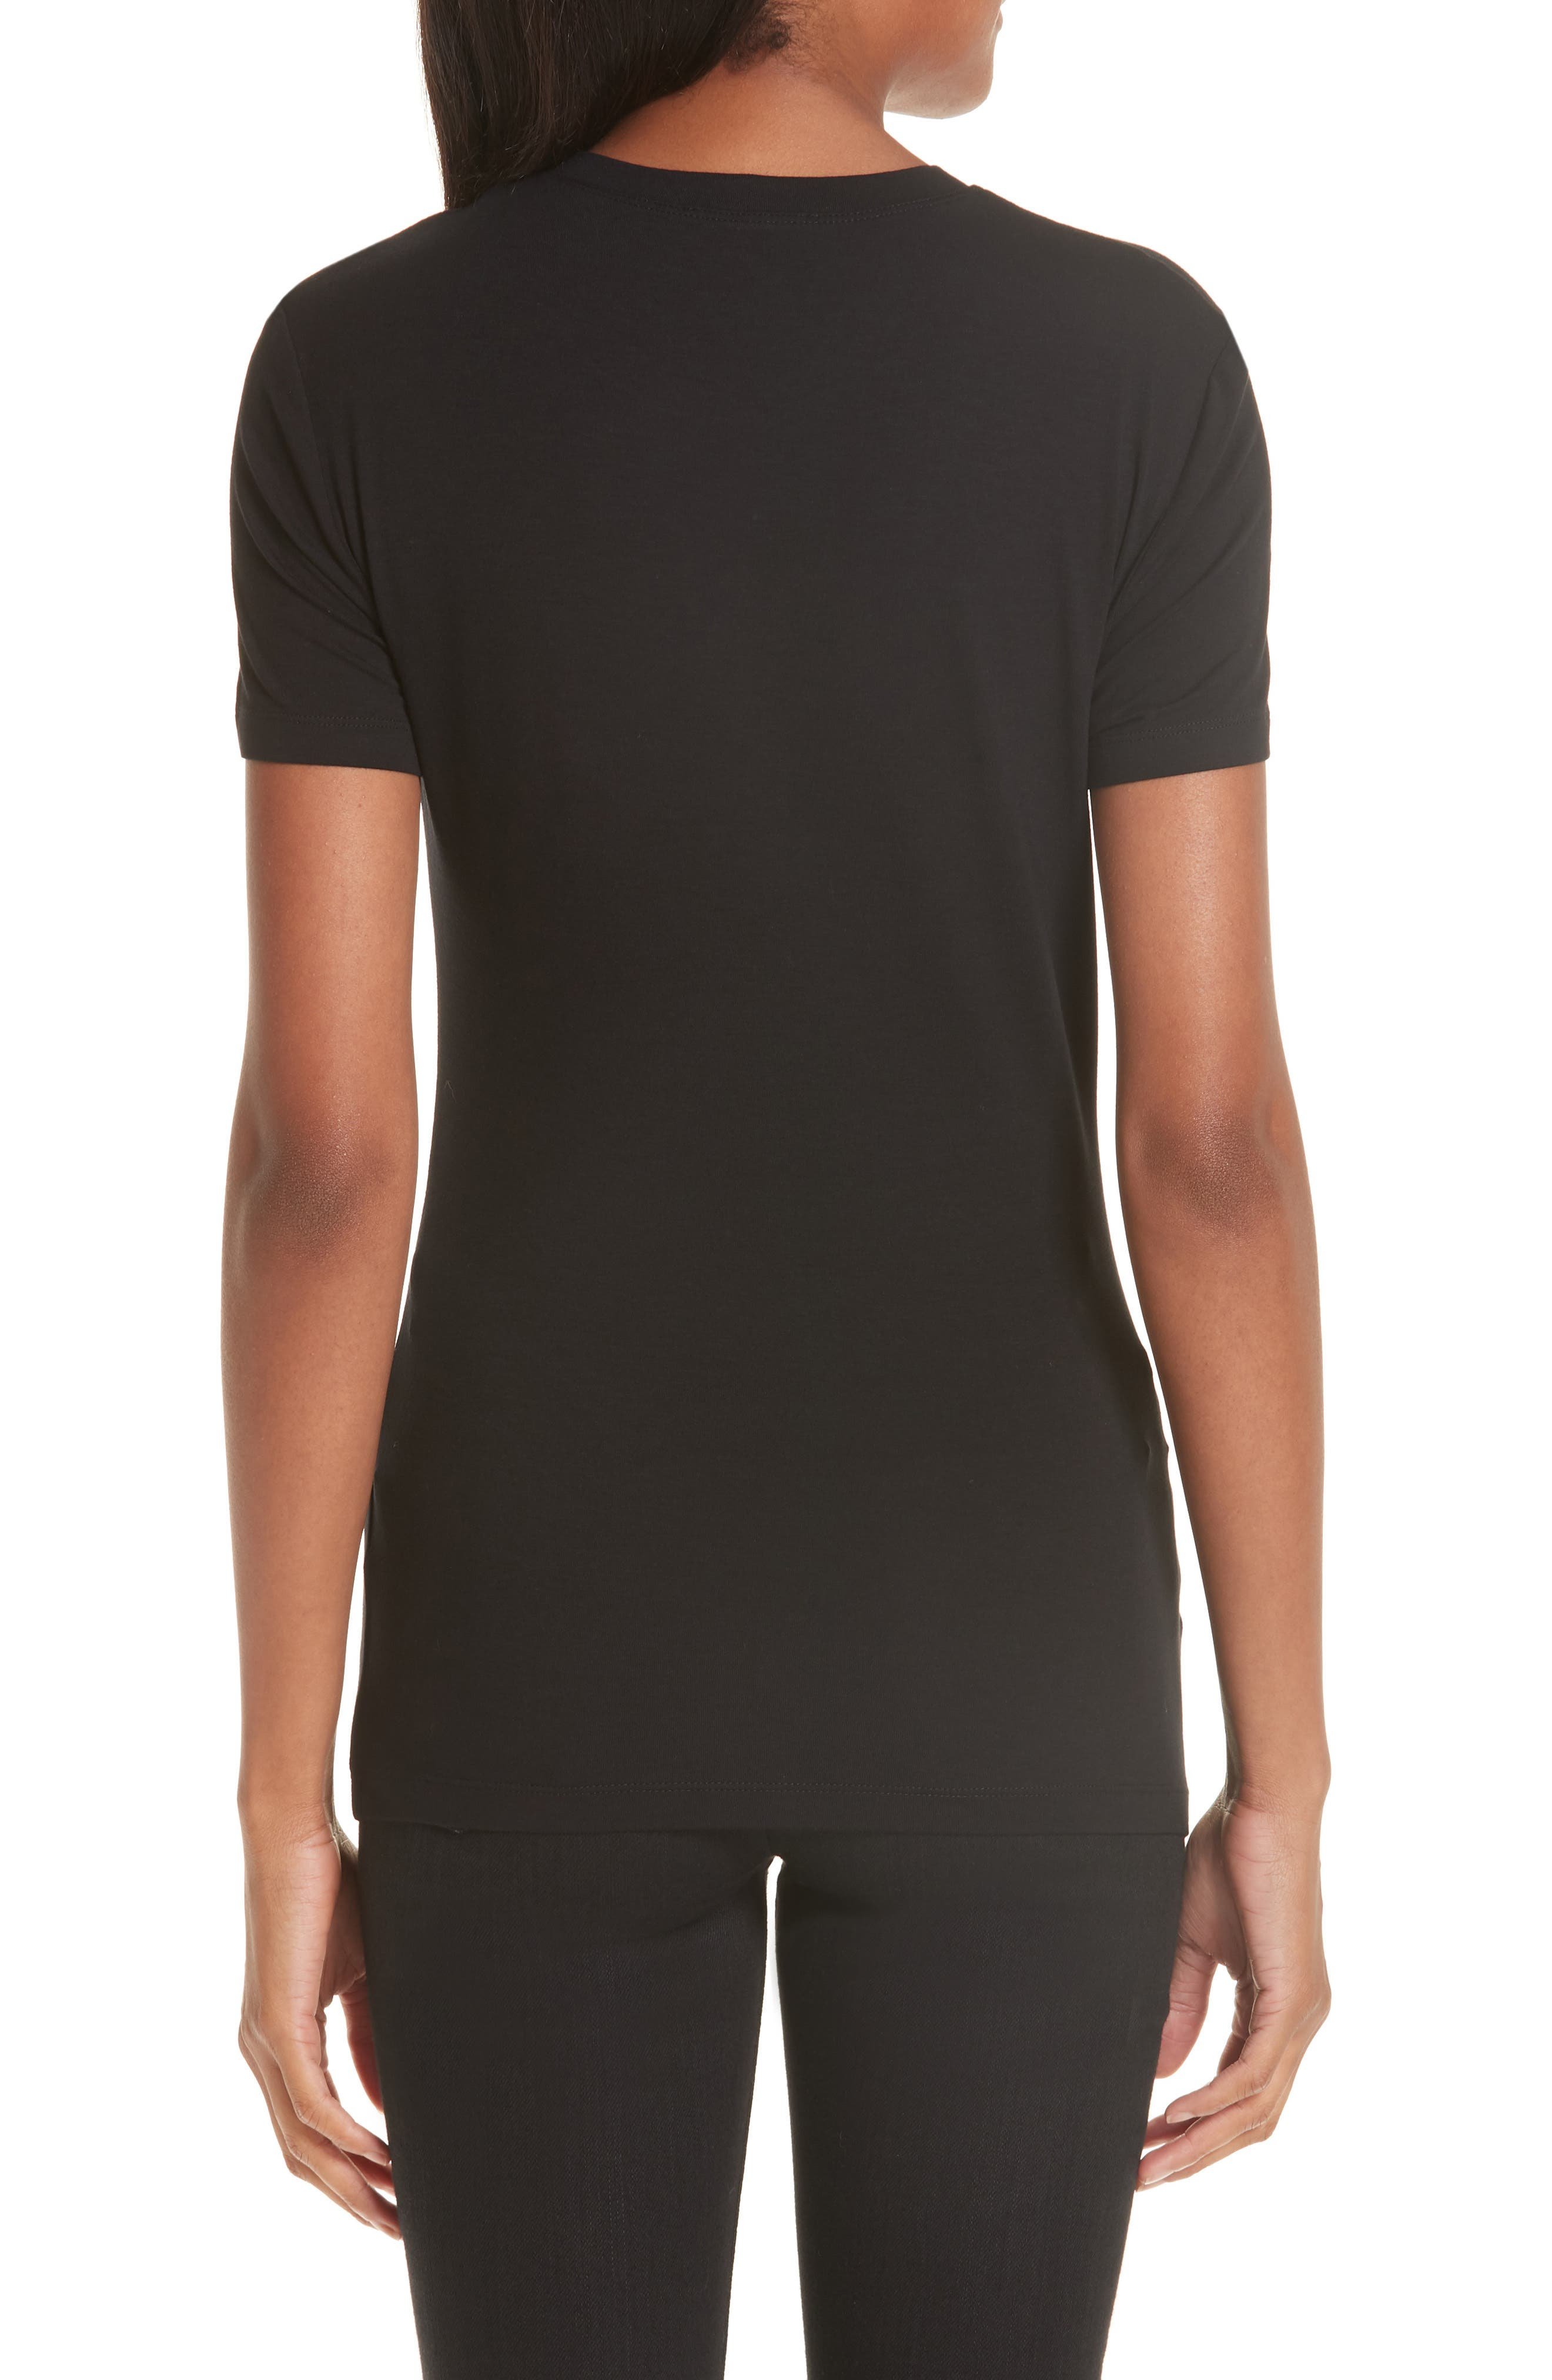 VERSACE COLLECTION, Medusa Crystal Embellished Jersey Tee, Alternate thumbnail 2, color, BLACK